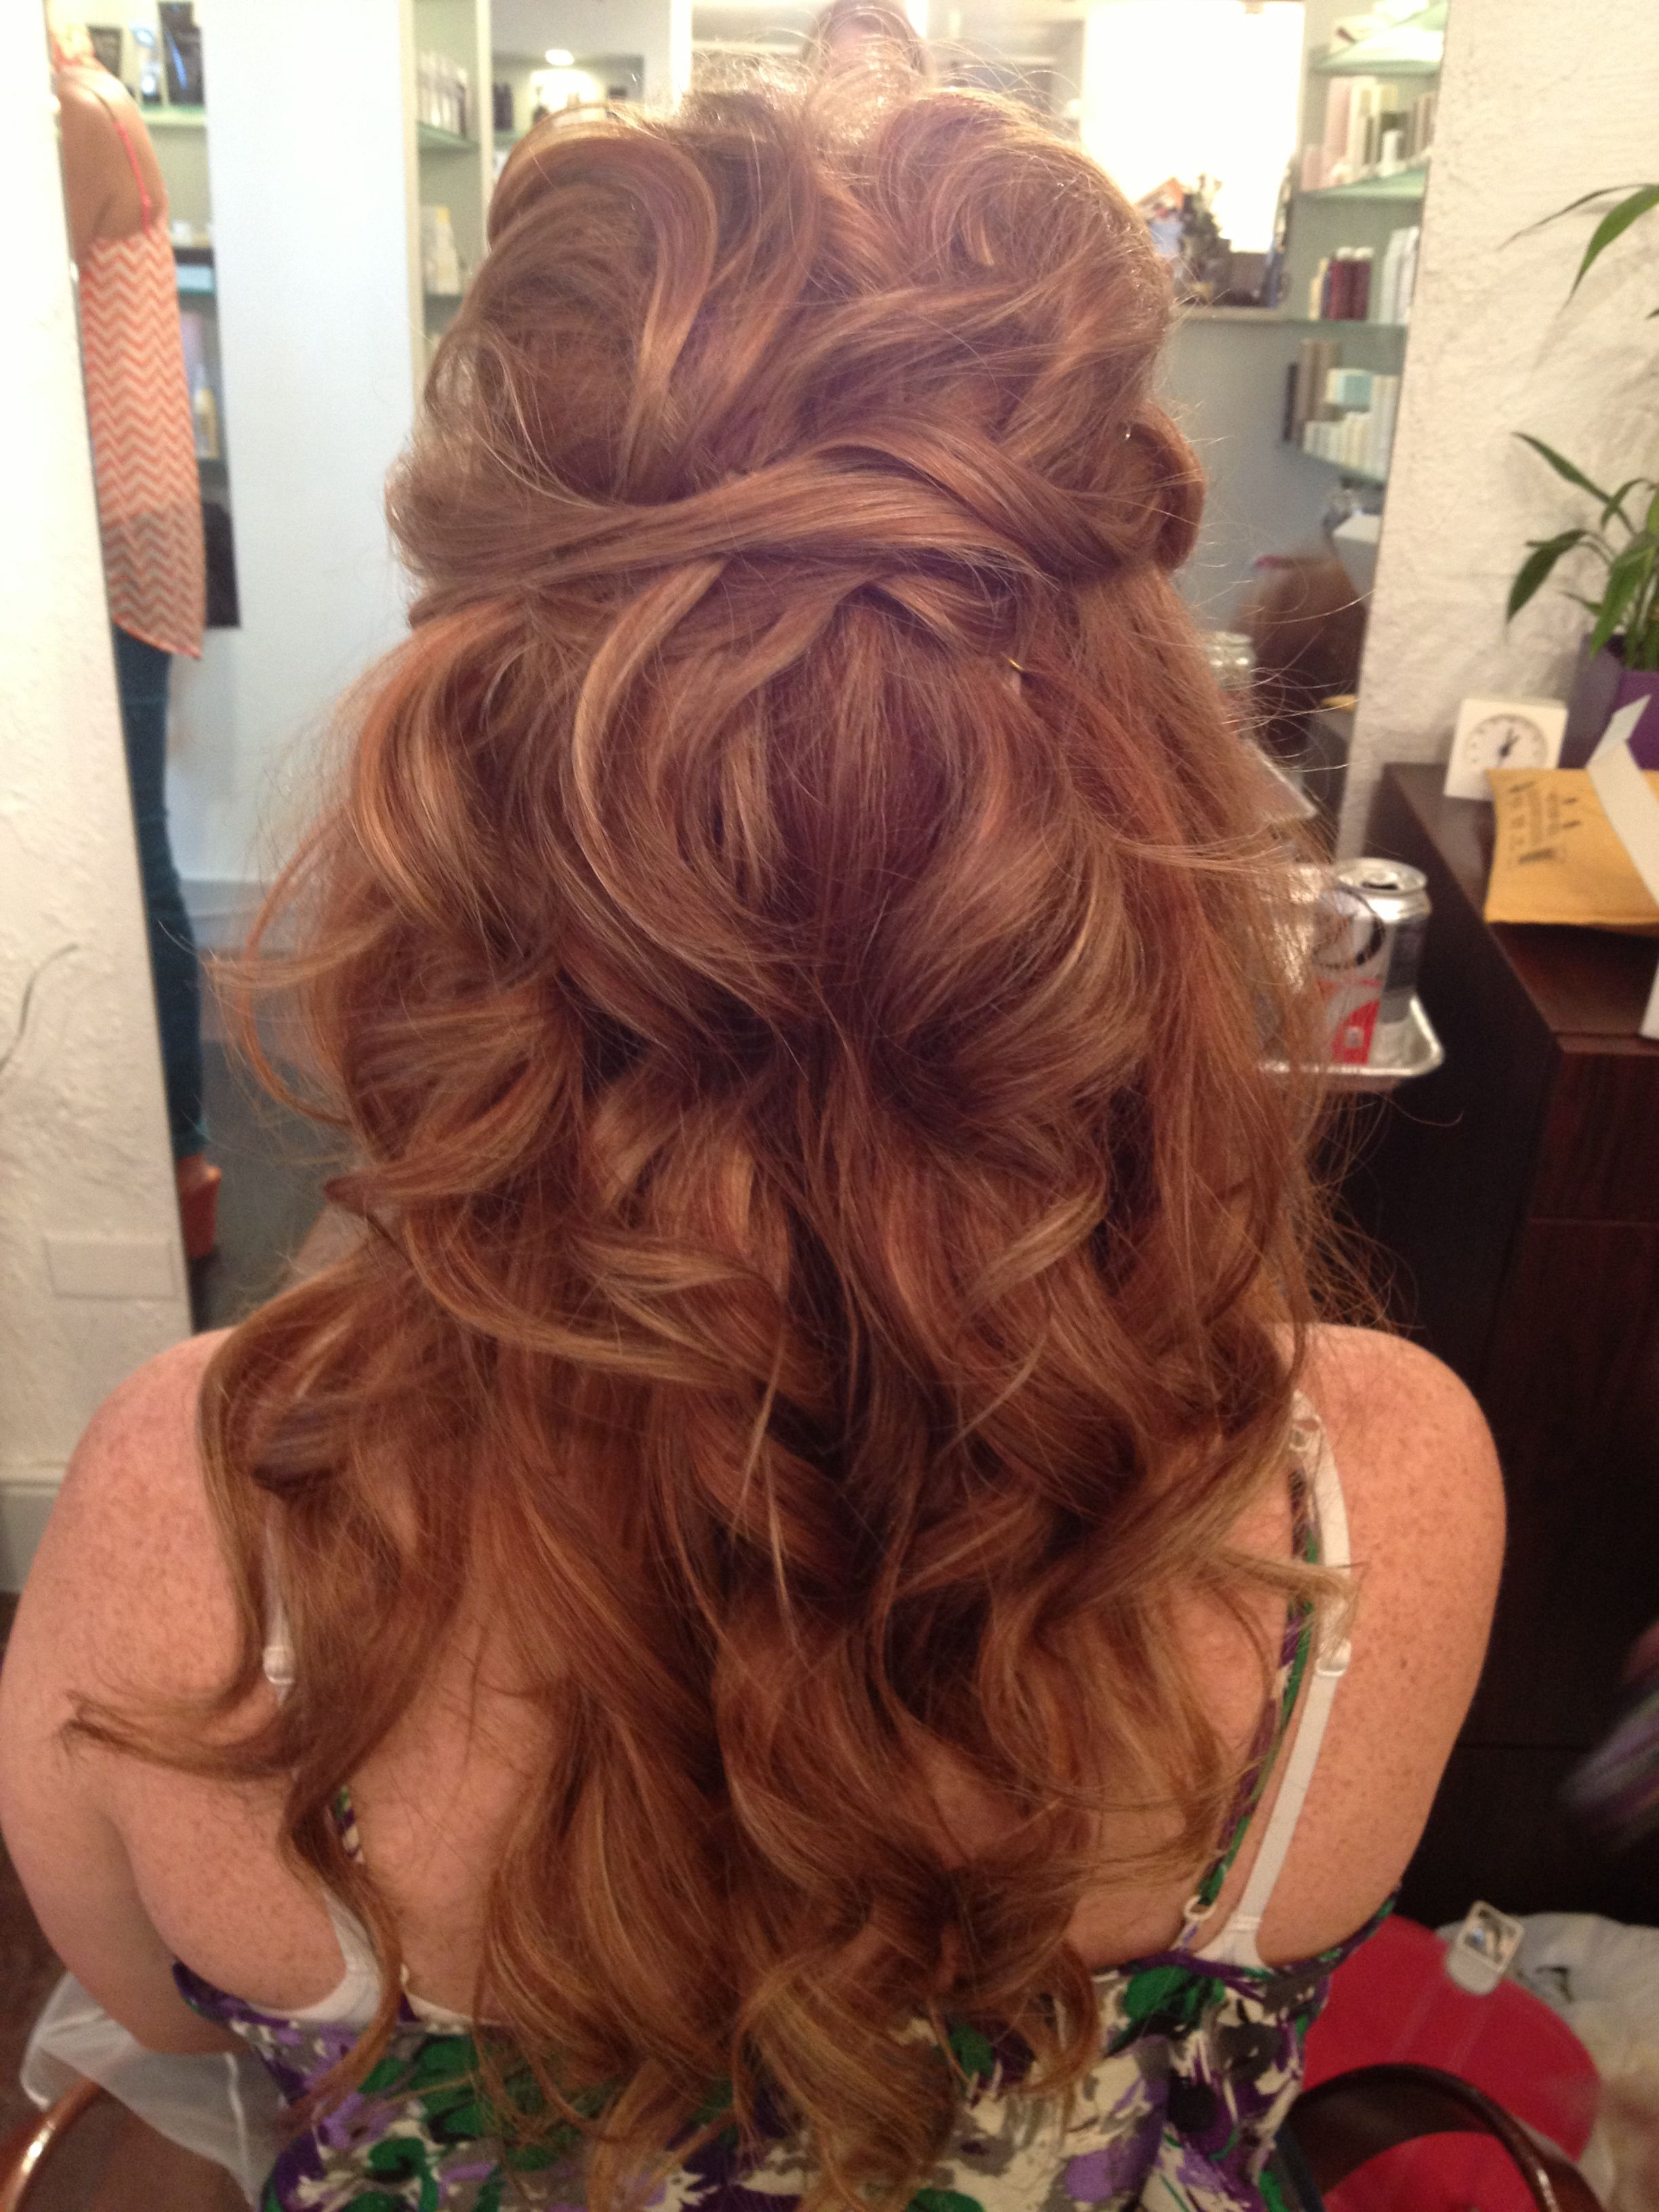 15 Best Long Wavy Hairstyles Popular Haircuts Hair Styles Long Curly Hair Long Wavy Hair